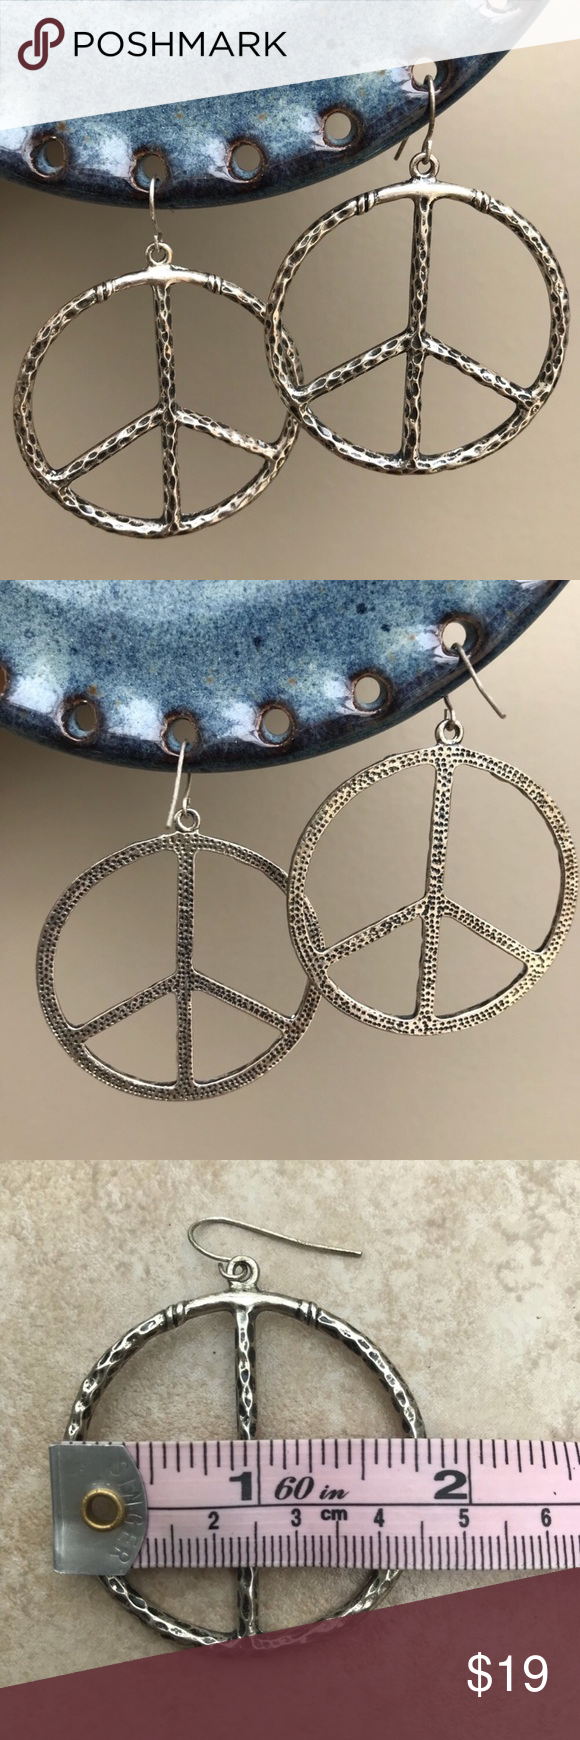 Download Peace Sign Earrings | Earrings, Things to sell, Fashion design